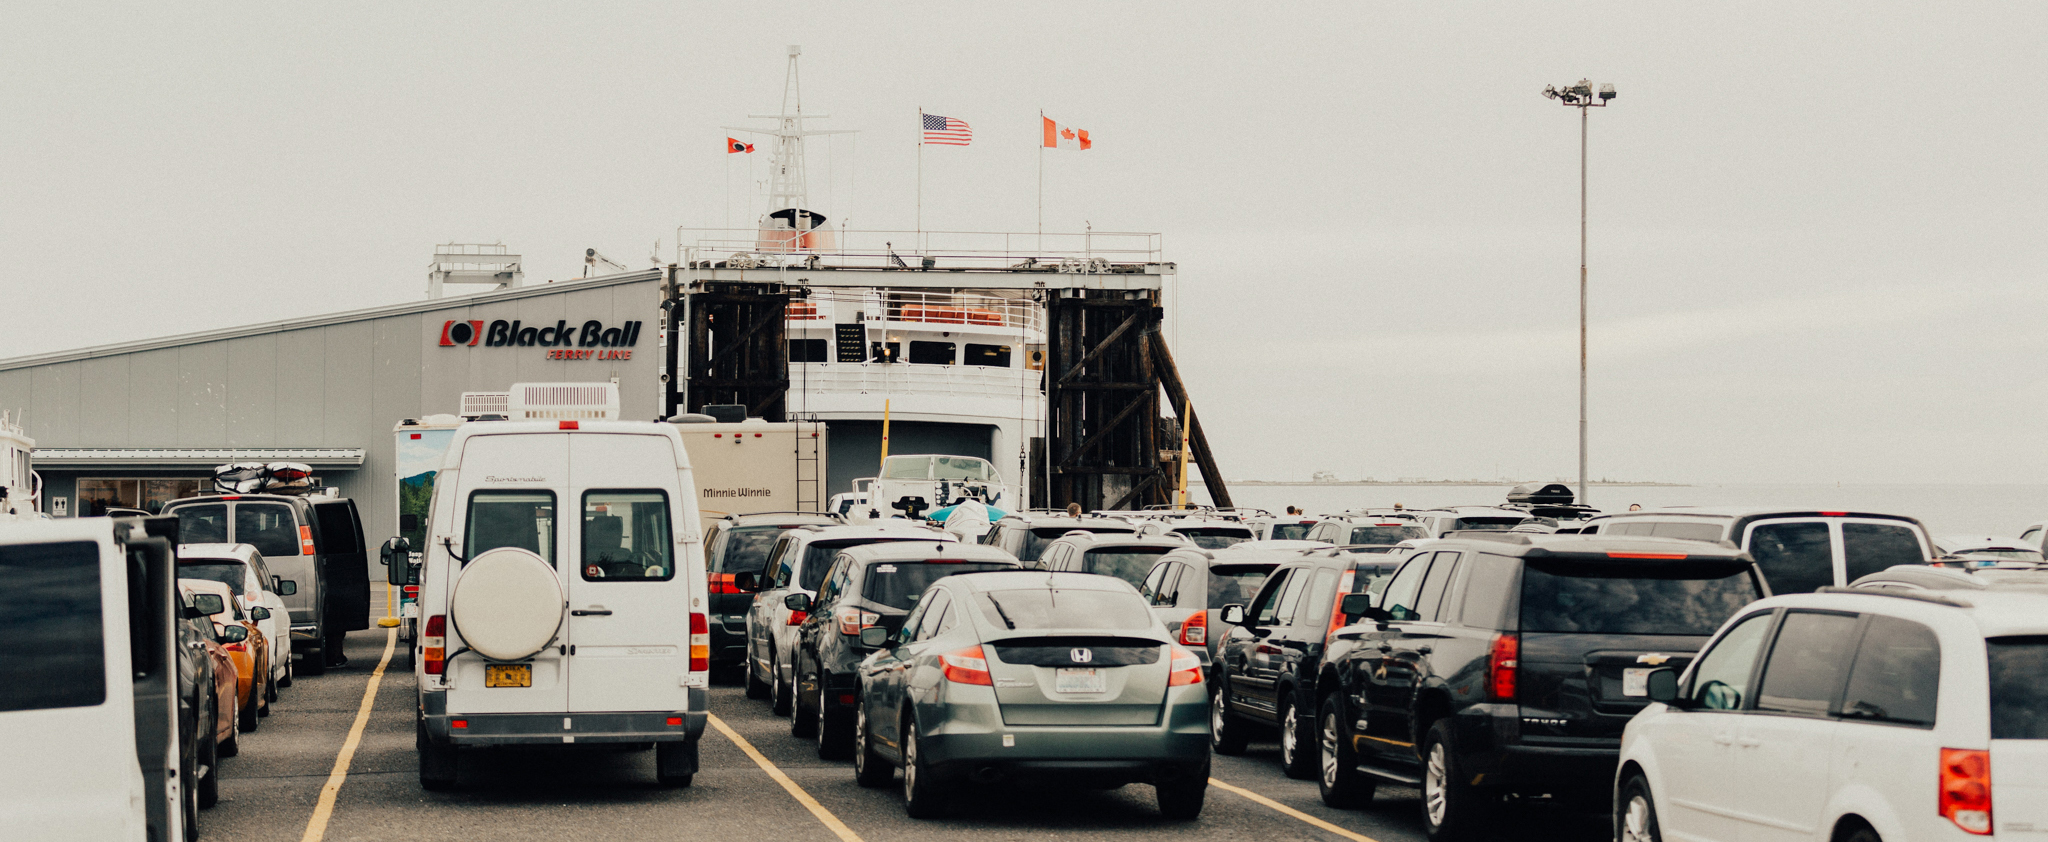 Driveon Passengers Black Ball Ferry Line Daily Departures To - Port angeles car show